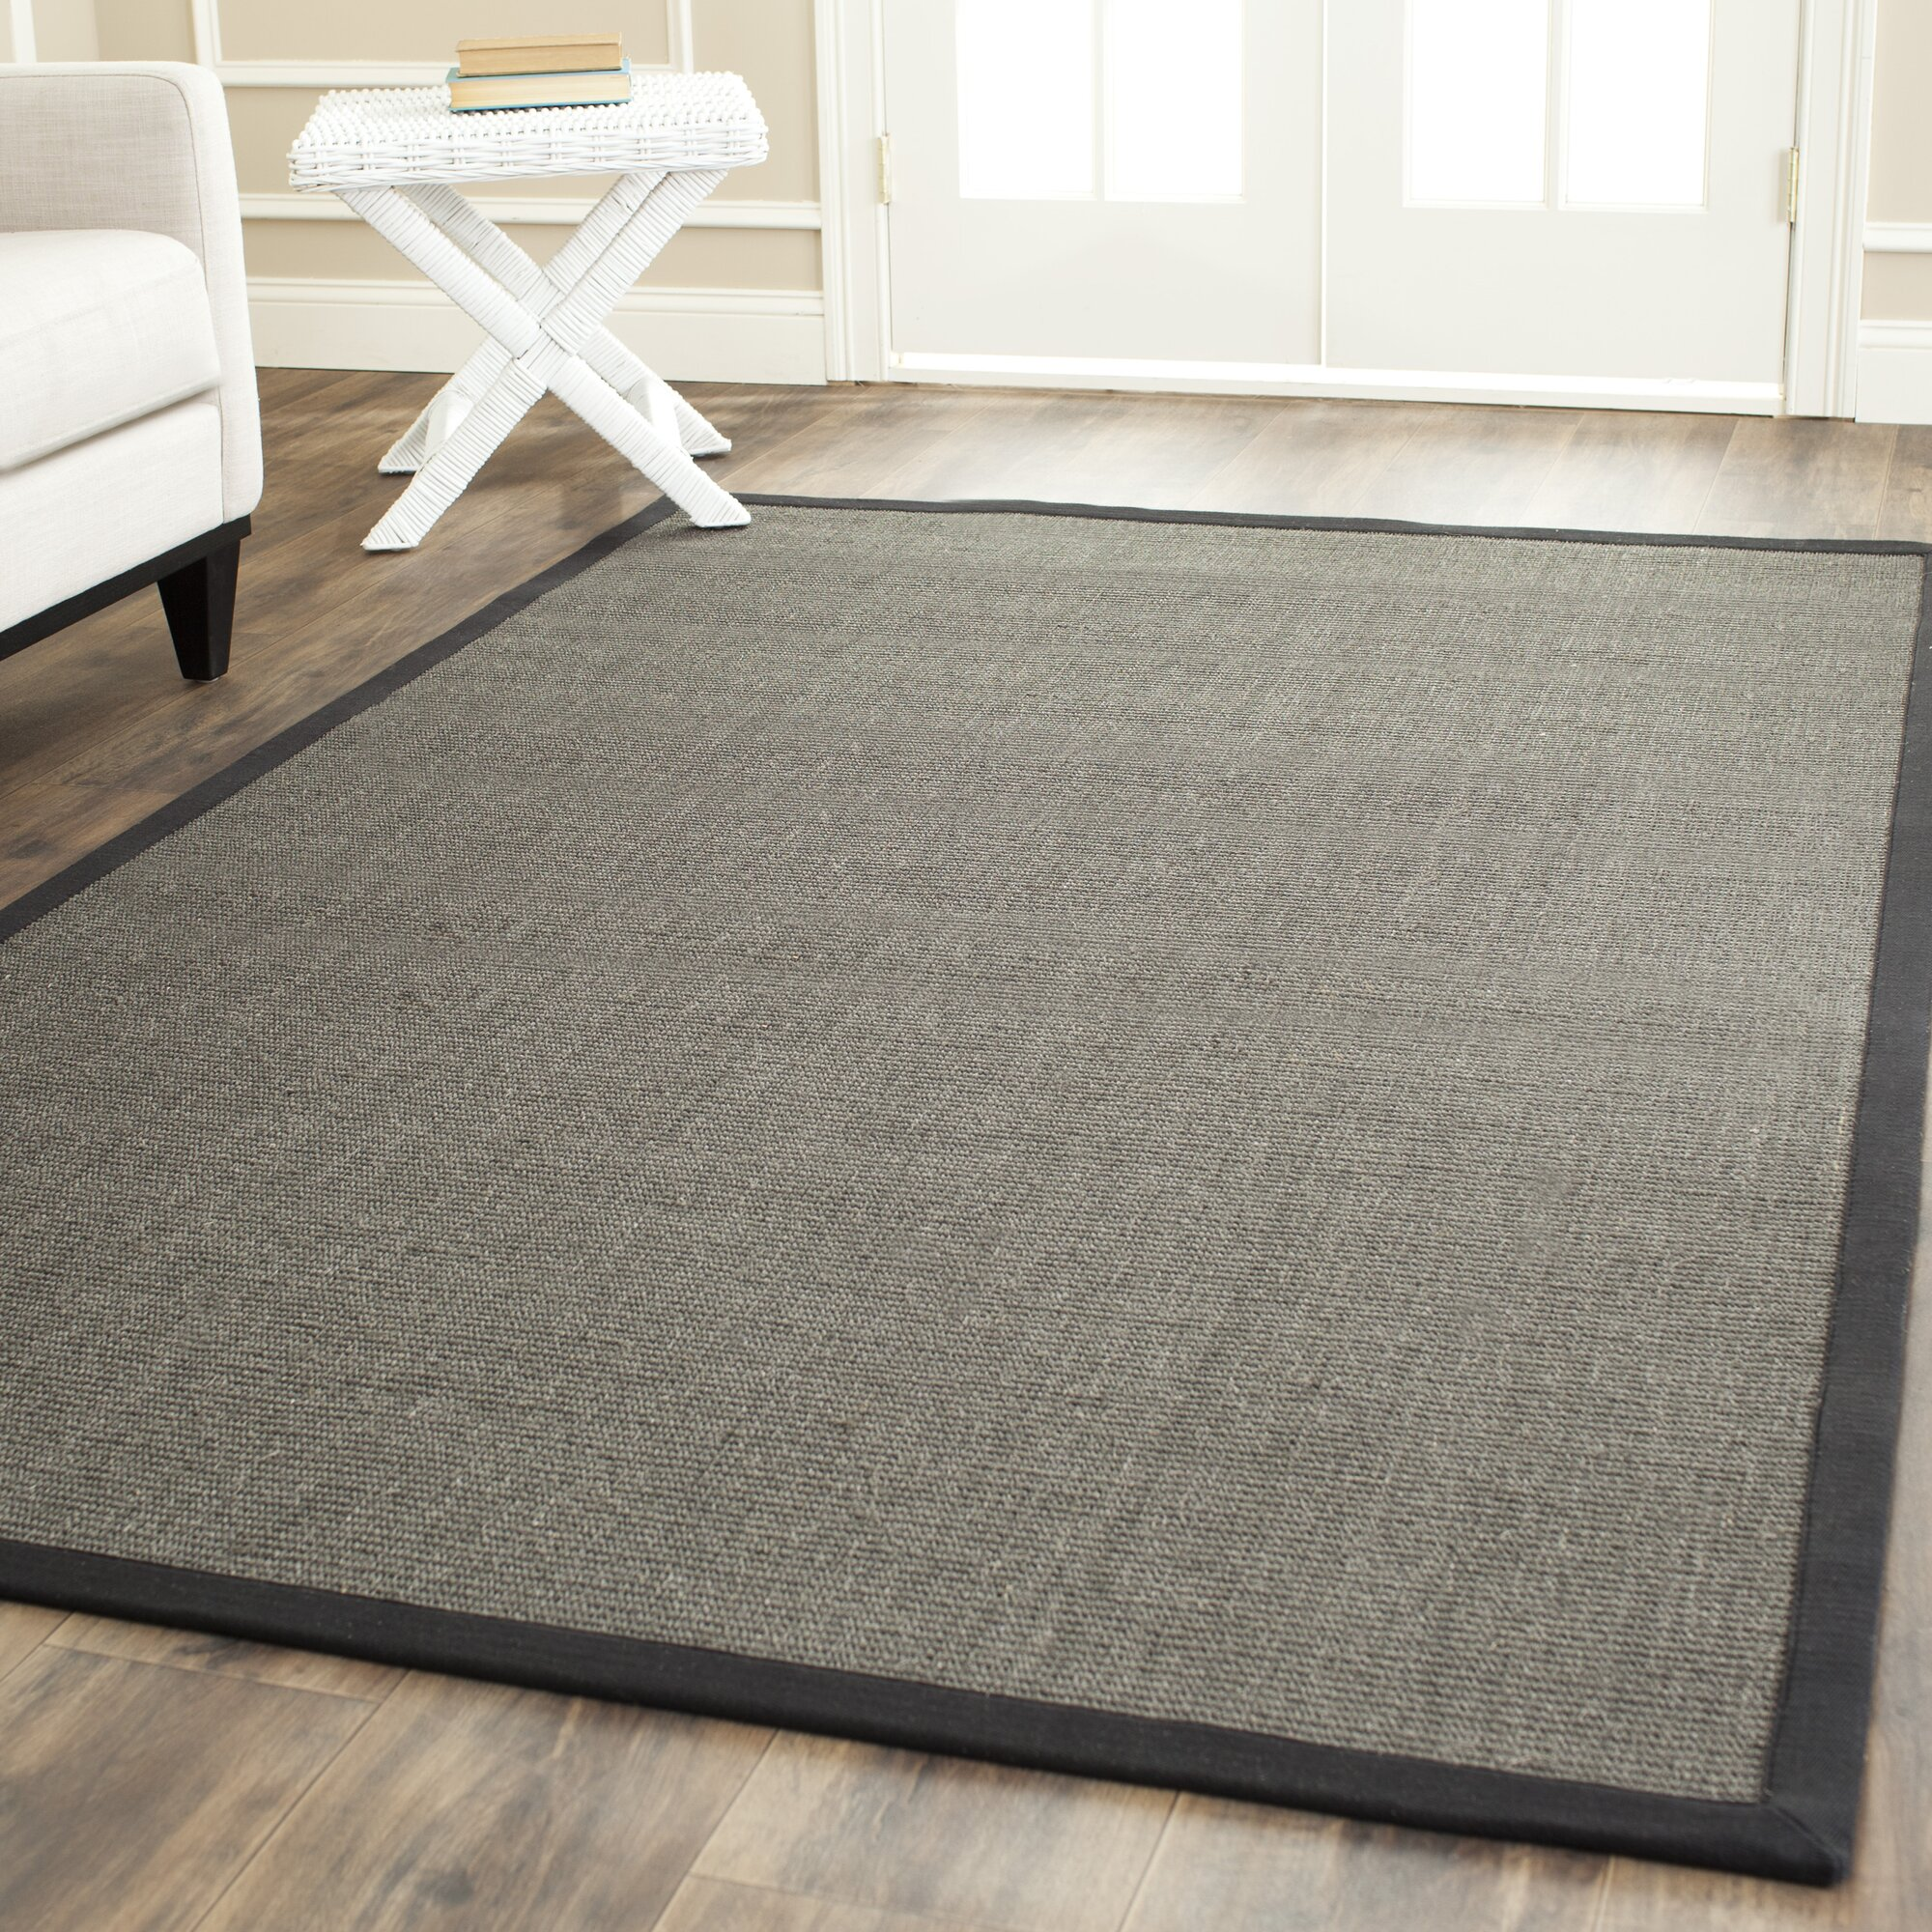 Machine Washable Entry Rugs Ideas